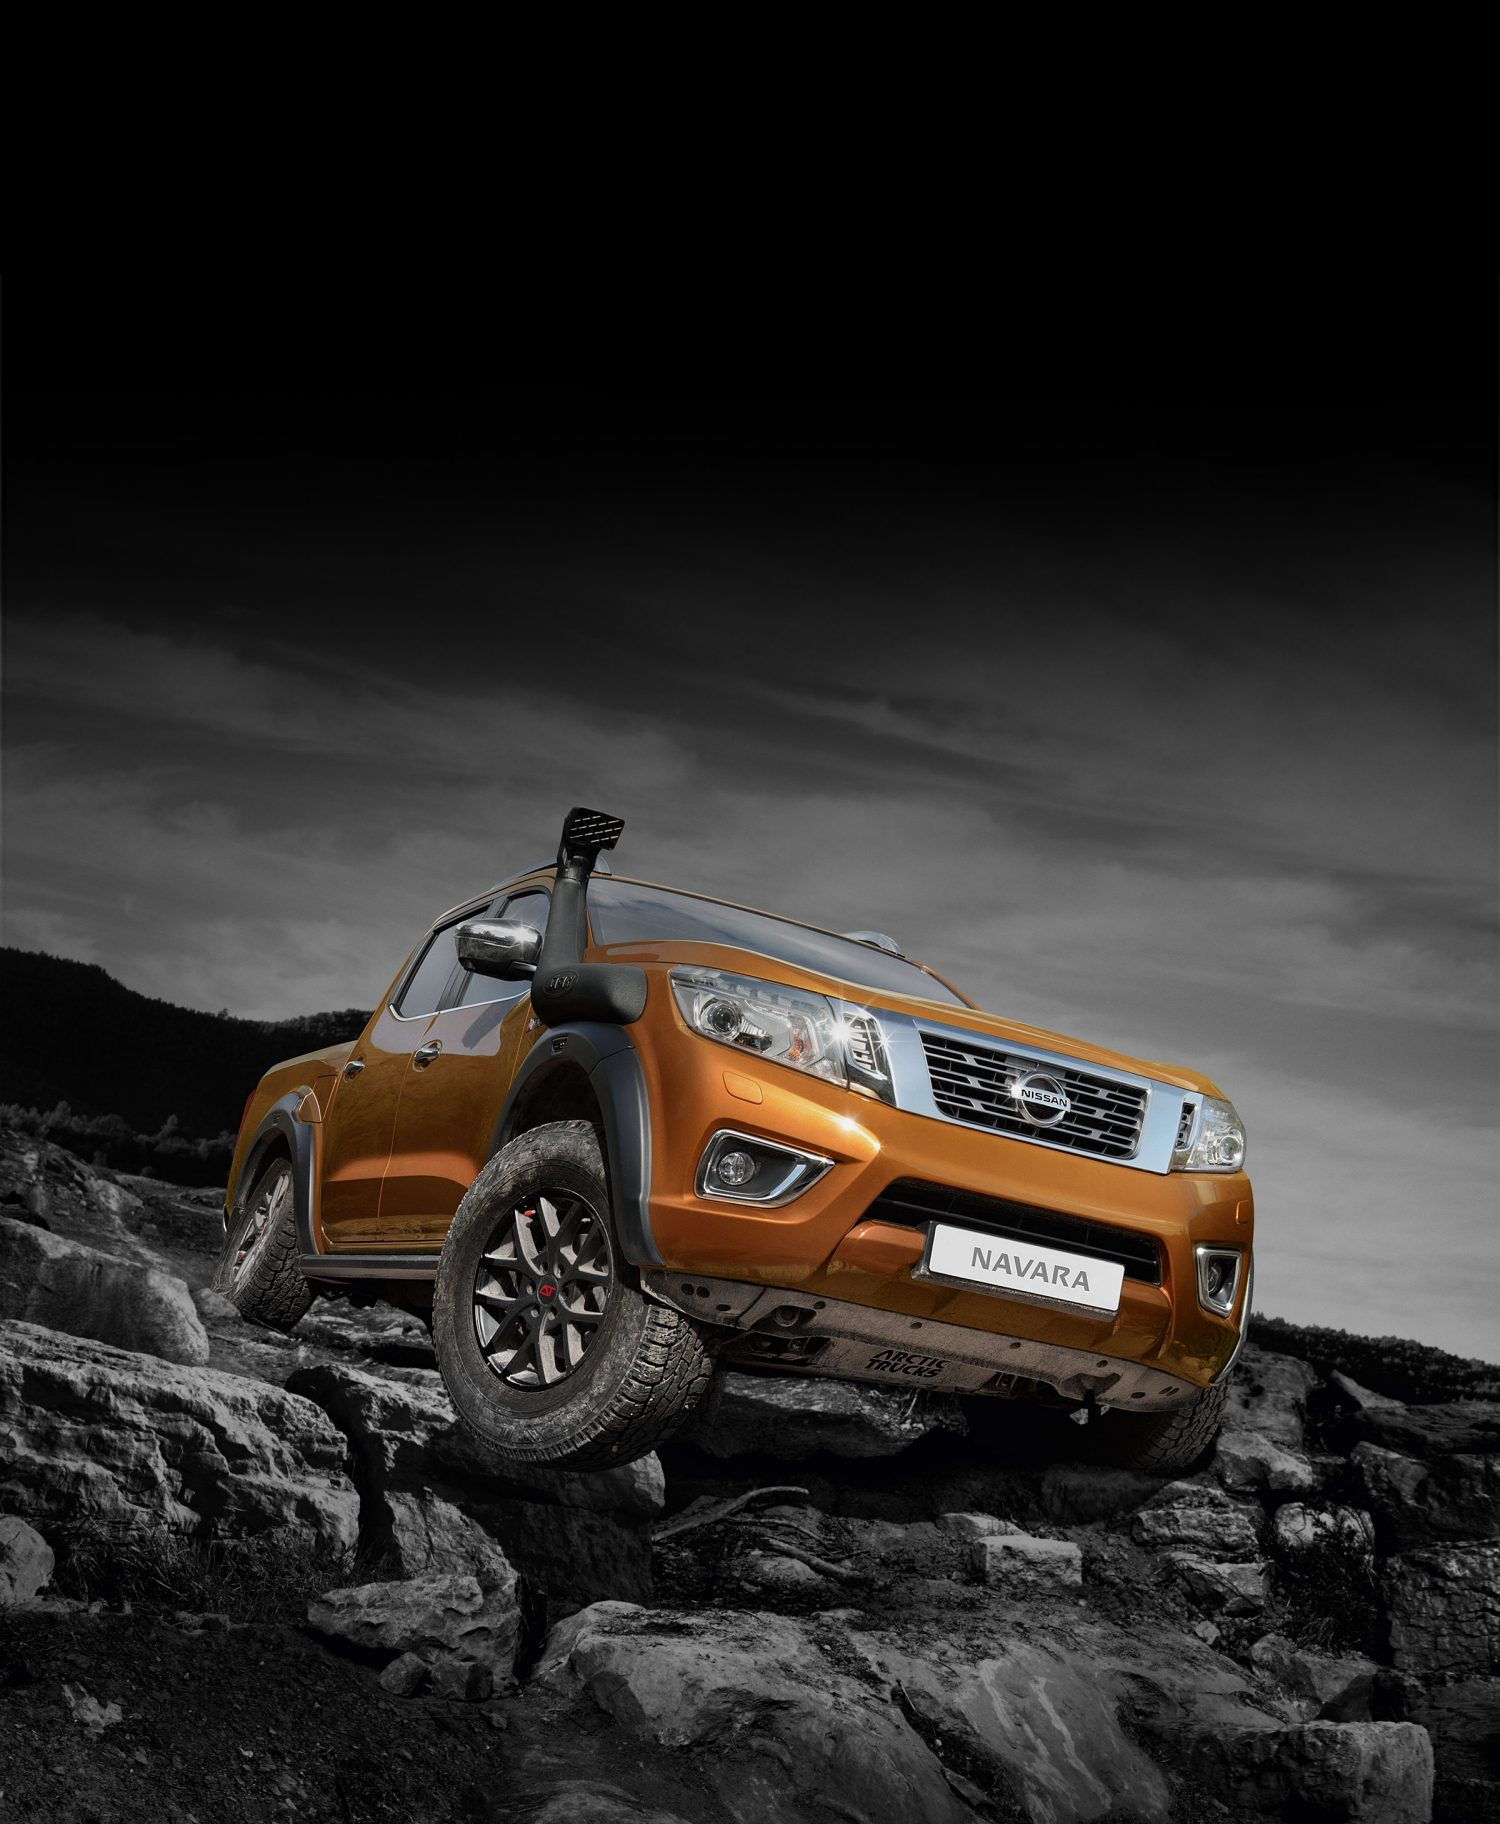 Nissan Navara off-roader AT32 driving on rocks